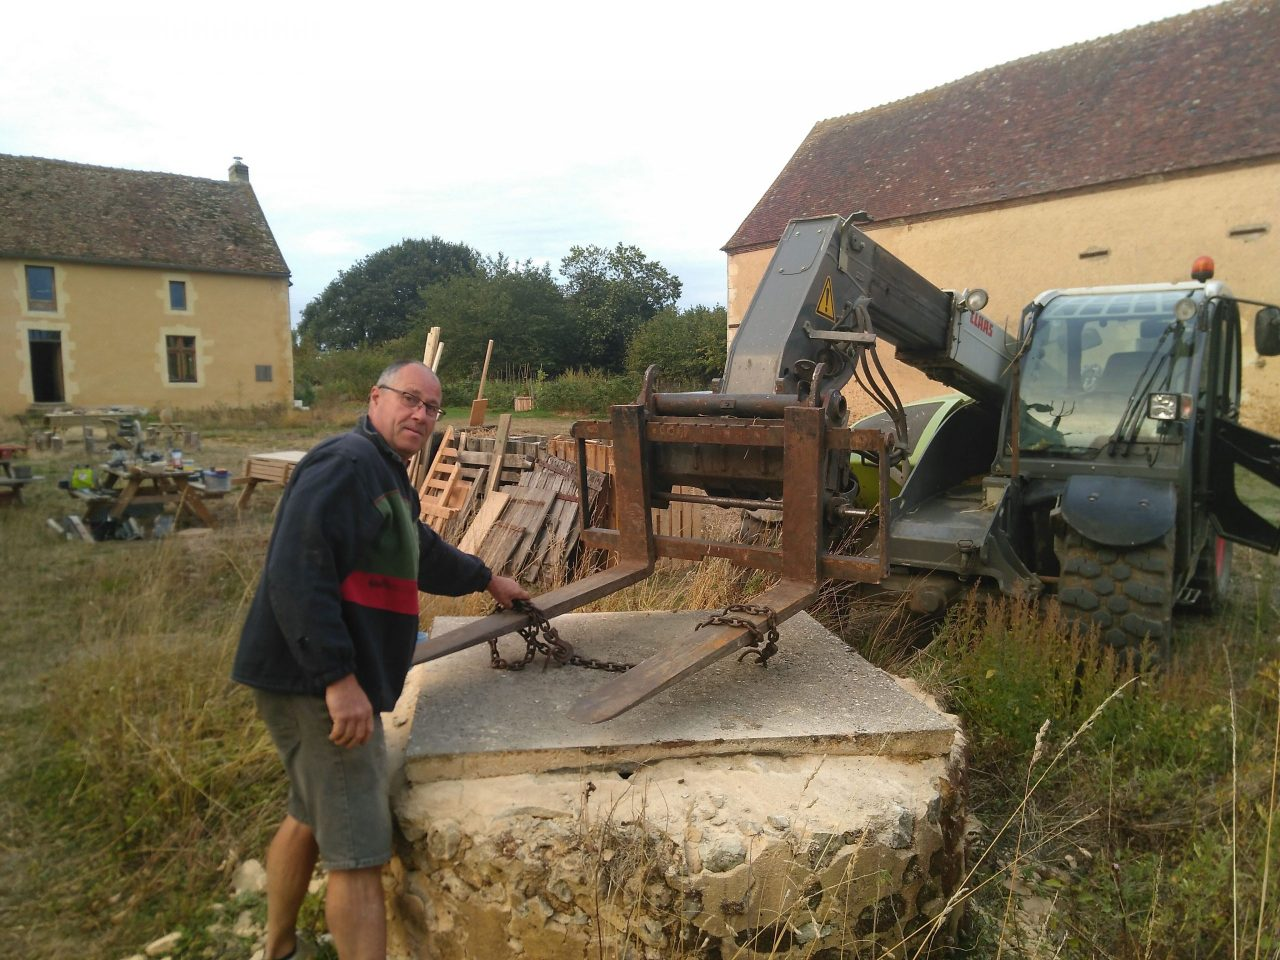 Our neighbour opening up the well with his tractor